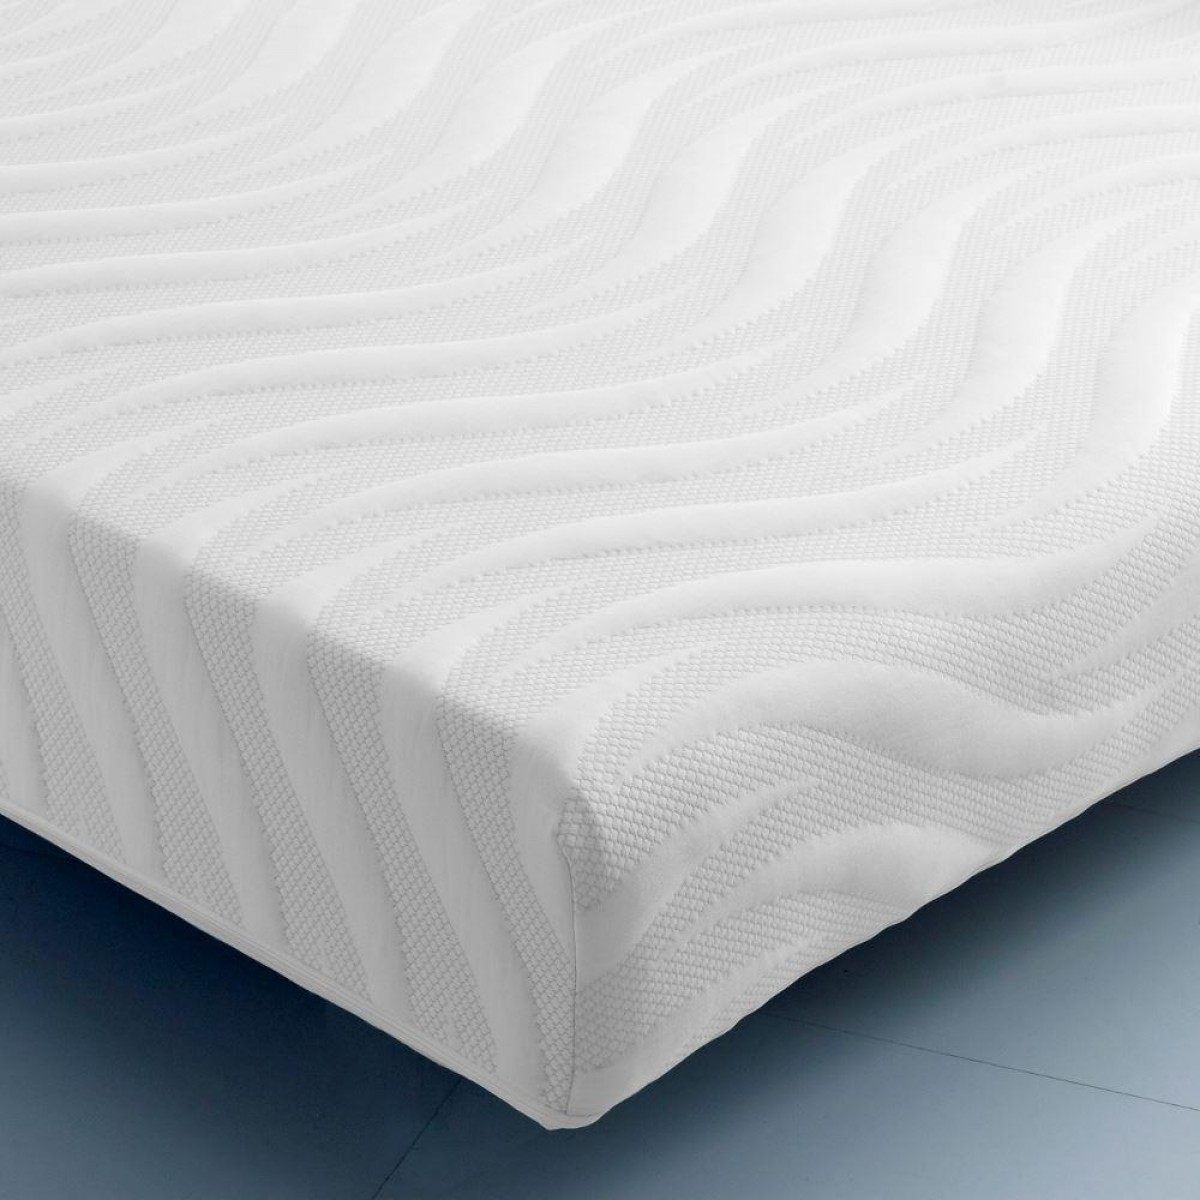 Ocean Wave Memory and Reflex Foam Orthopaedic Mattress